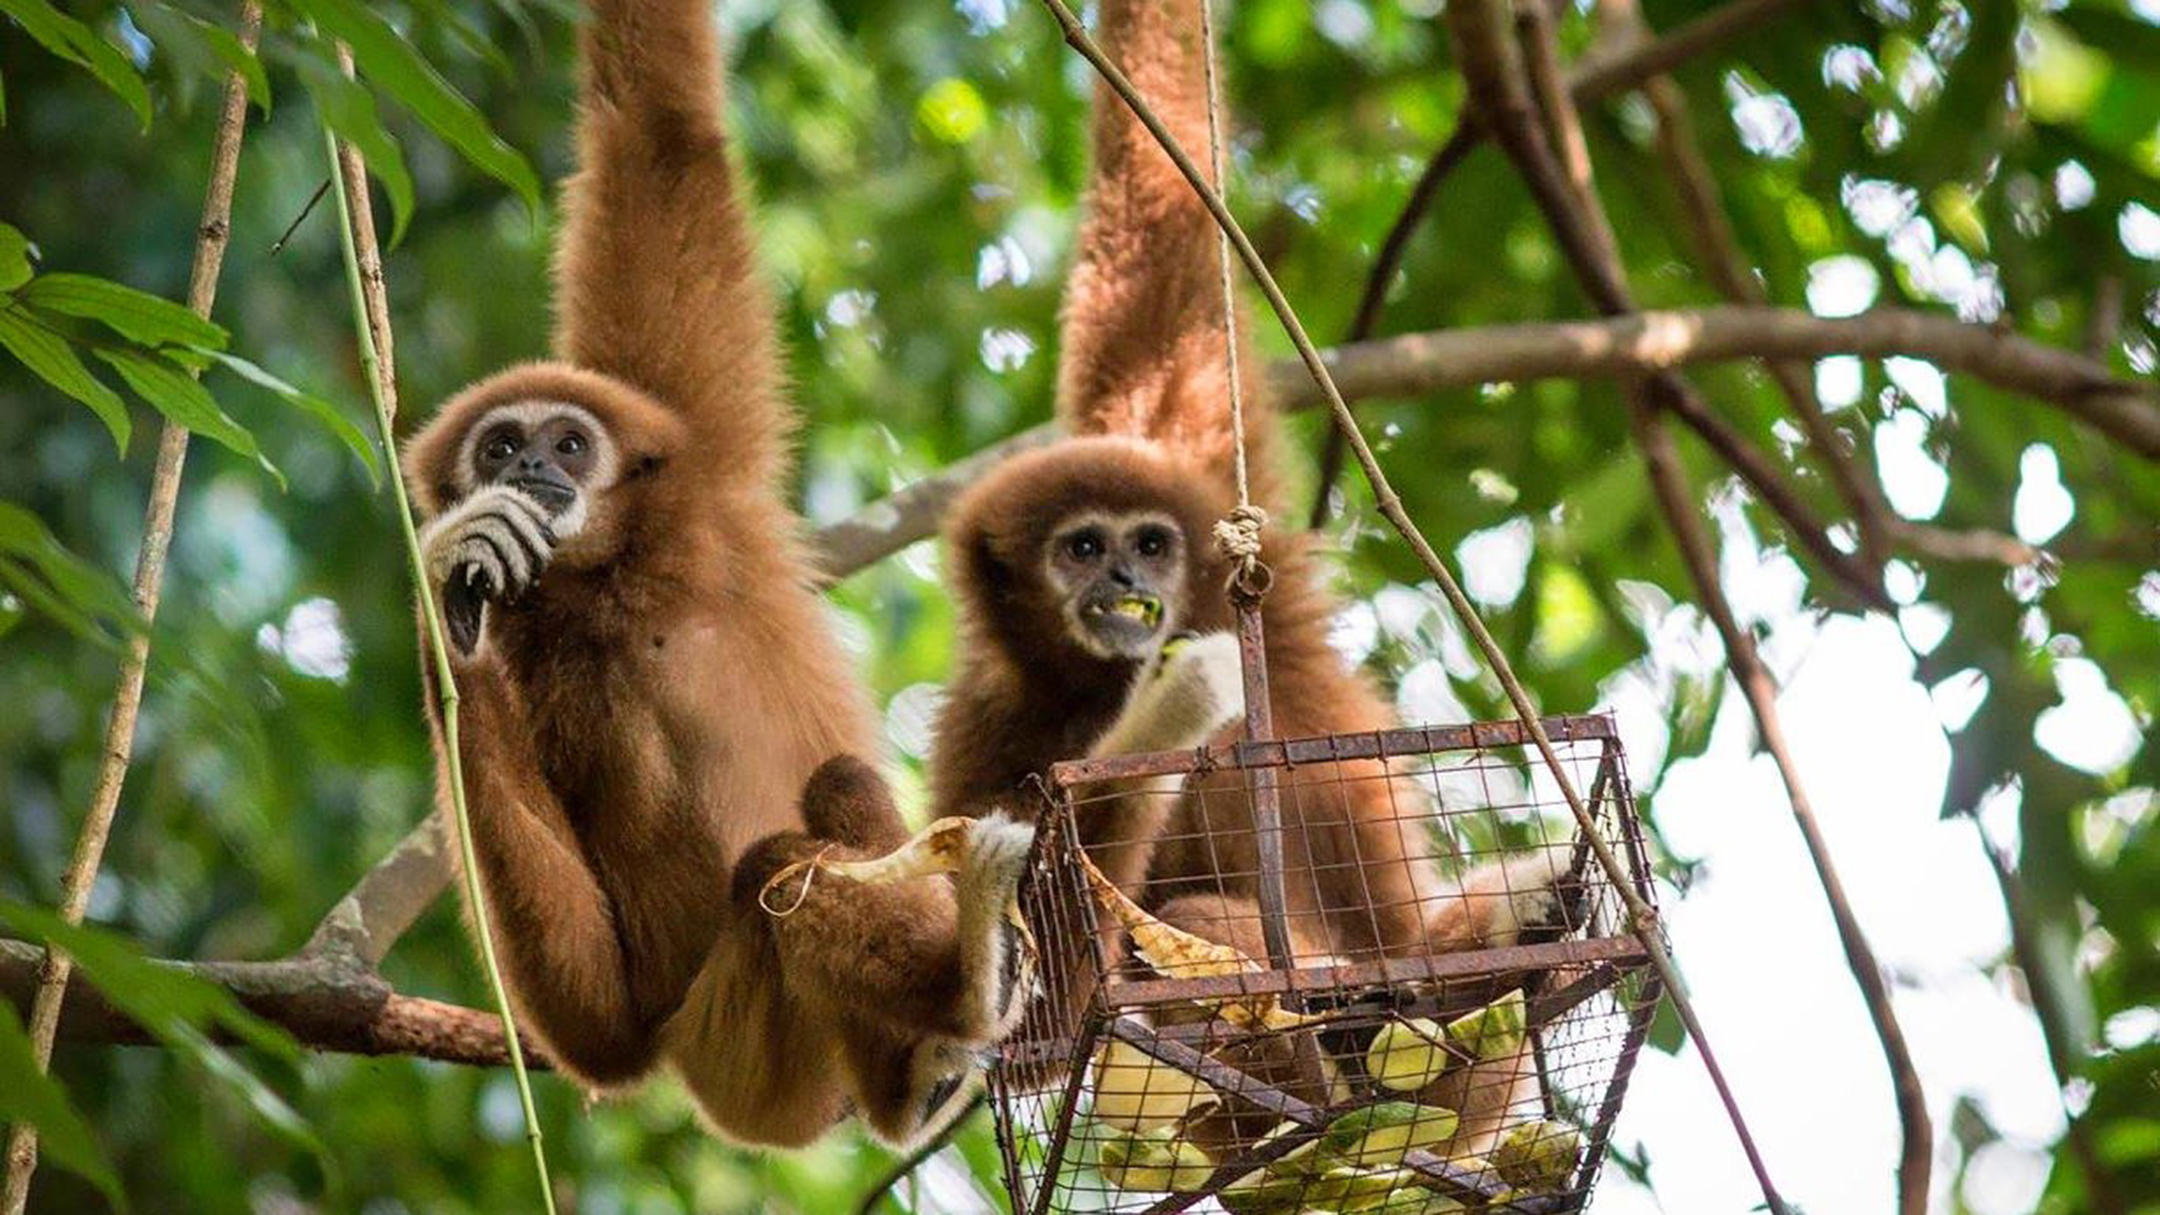 A day with the gibbons